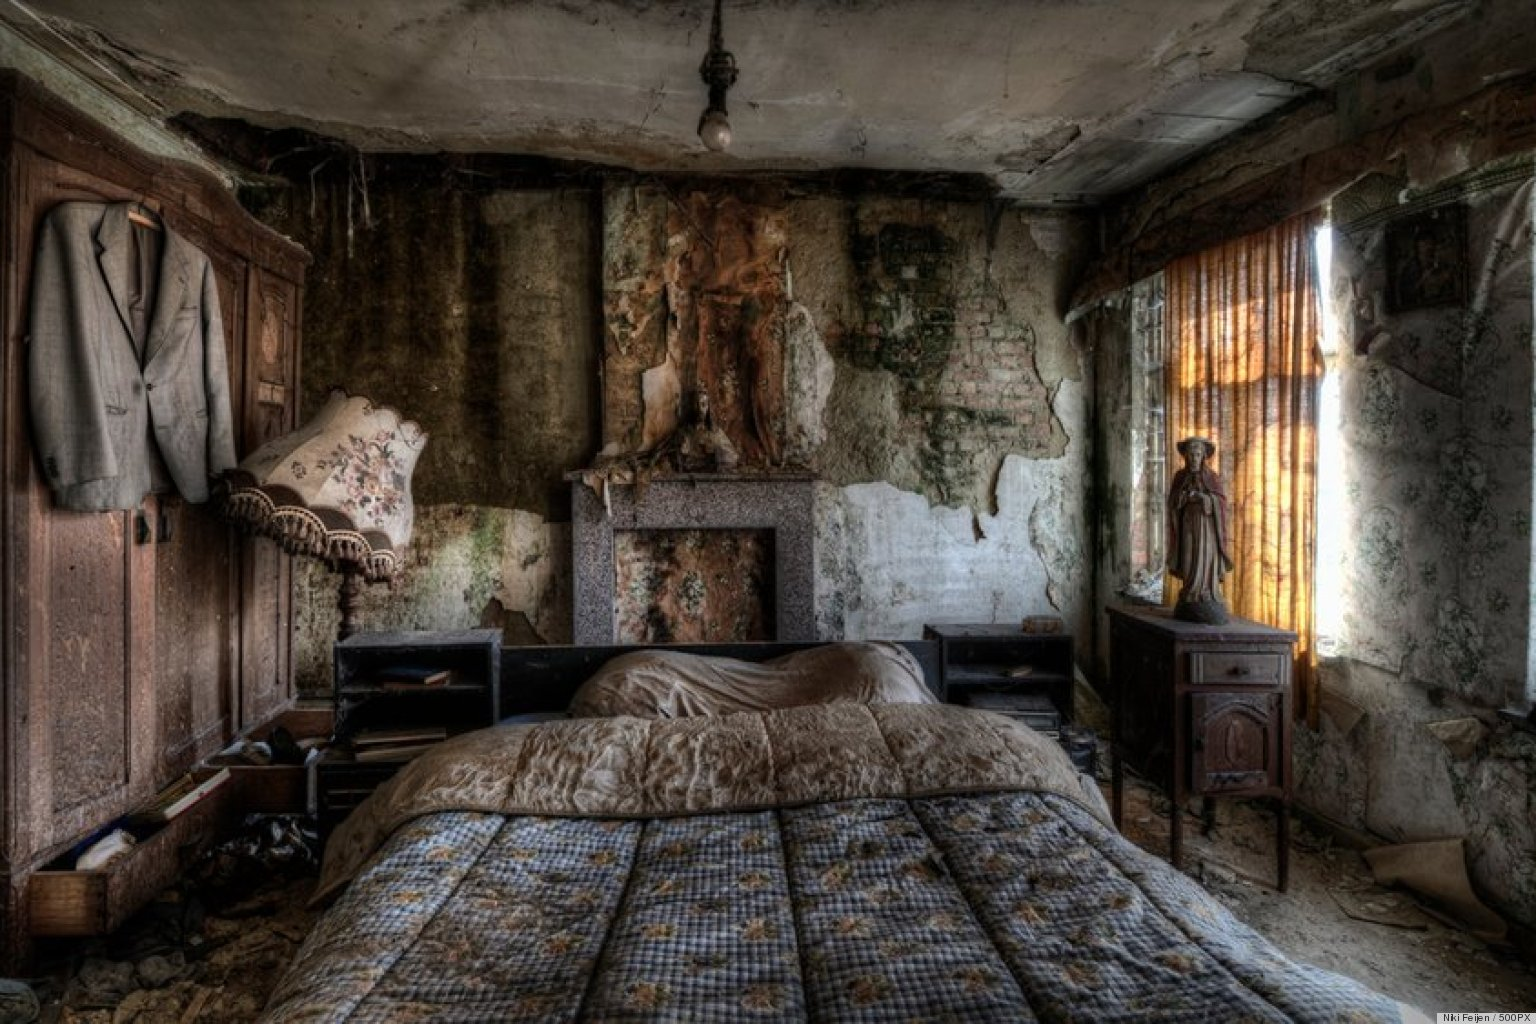 Stunning Pics Of An Abandoned Farmhouse Where The Bed Is Still Made  (PHOTOS) | HuffPost